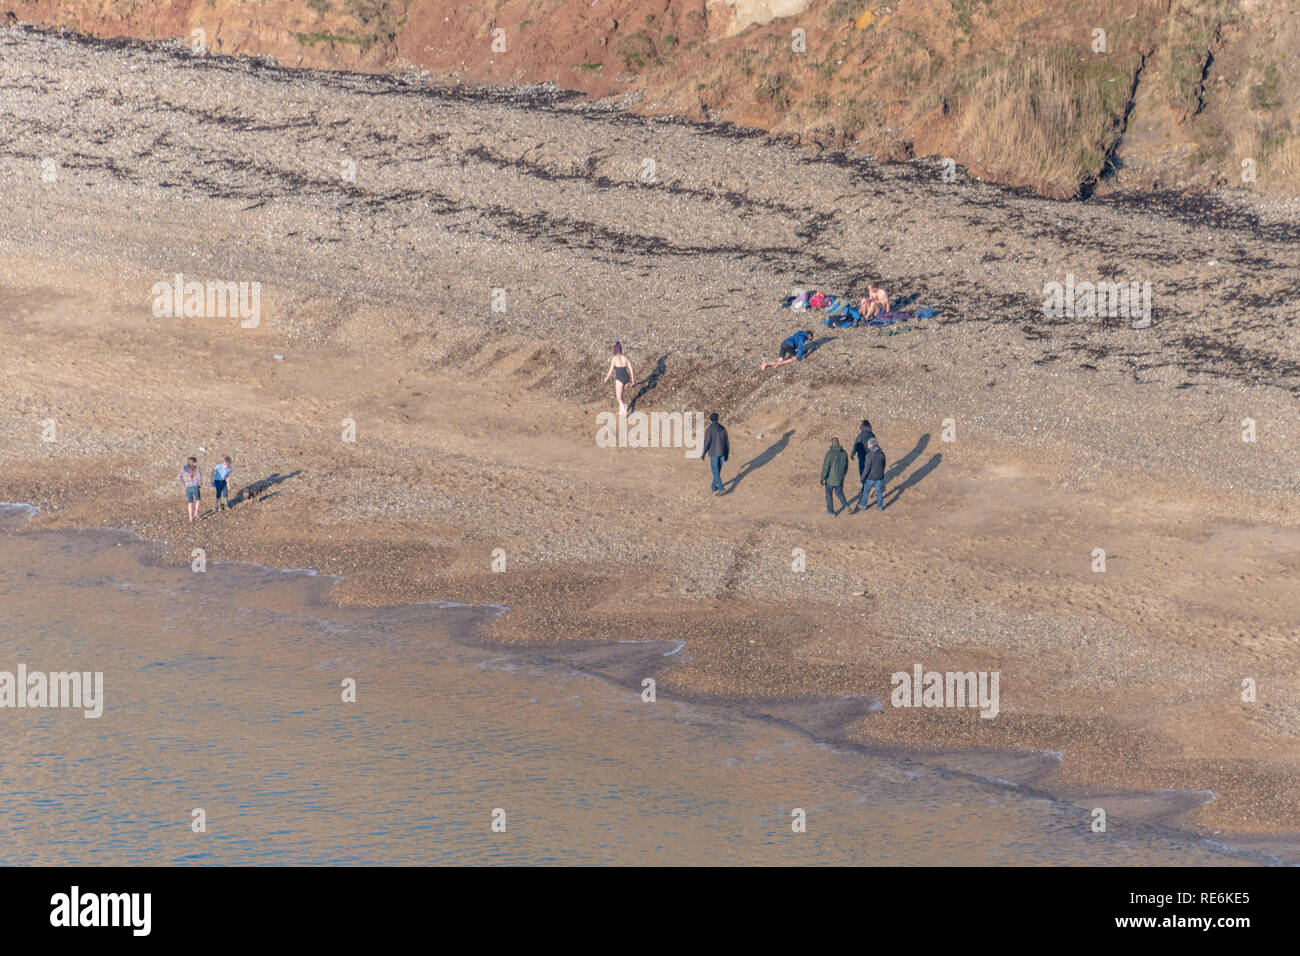 Wareham, UK. Sunday 20th January 2019. Visitors enjoy the winter sun at Worbarrow Beach on the Jurassic Coast in Dorset. People are wrapped up warm in the 4 degree cold but sunny weather. Credit: Thomas Faull/Alamy Live News Stock Photo